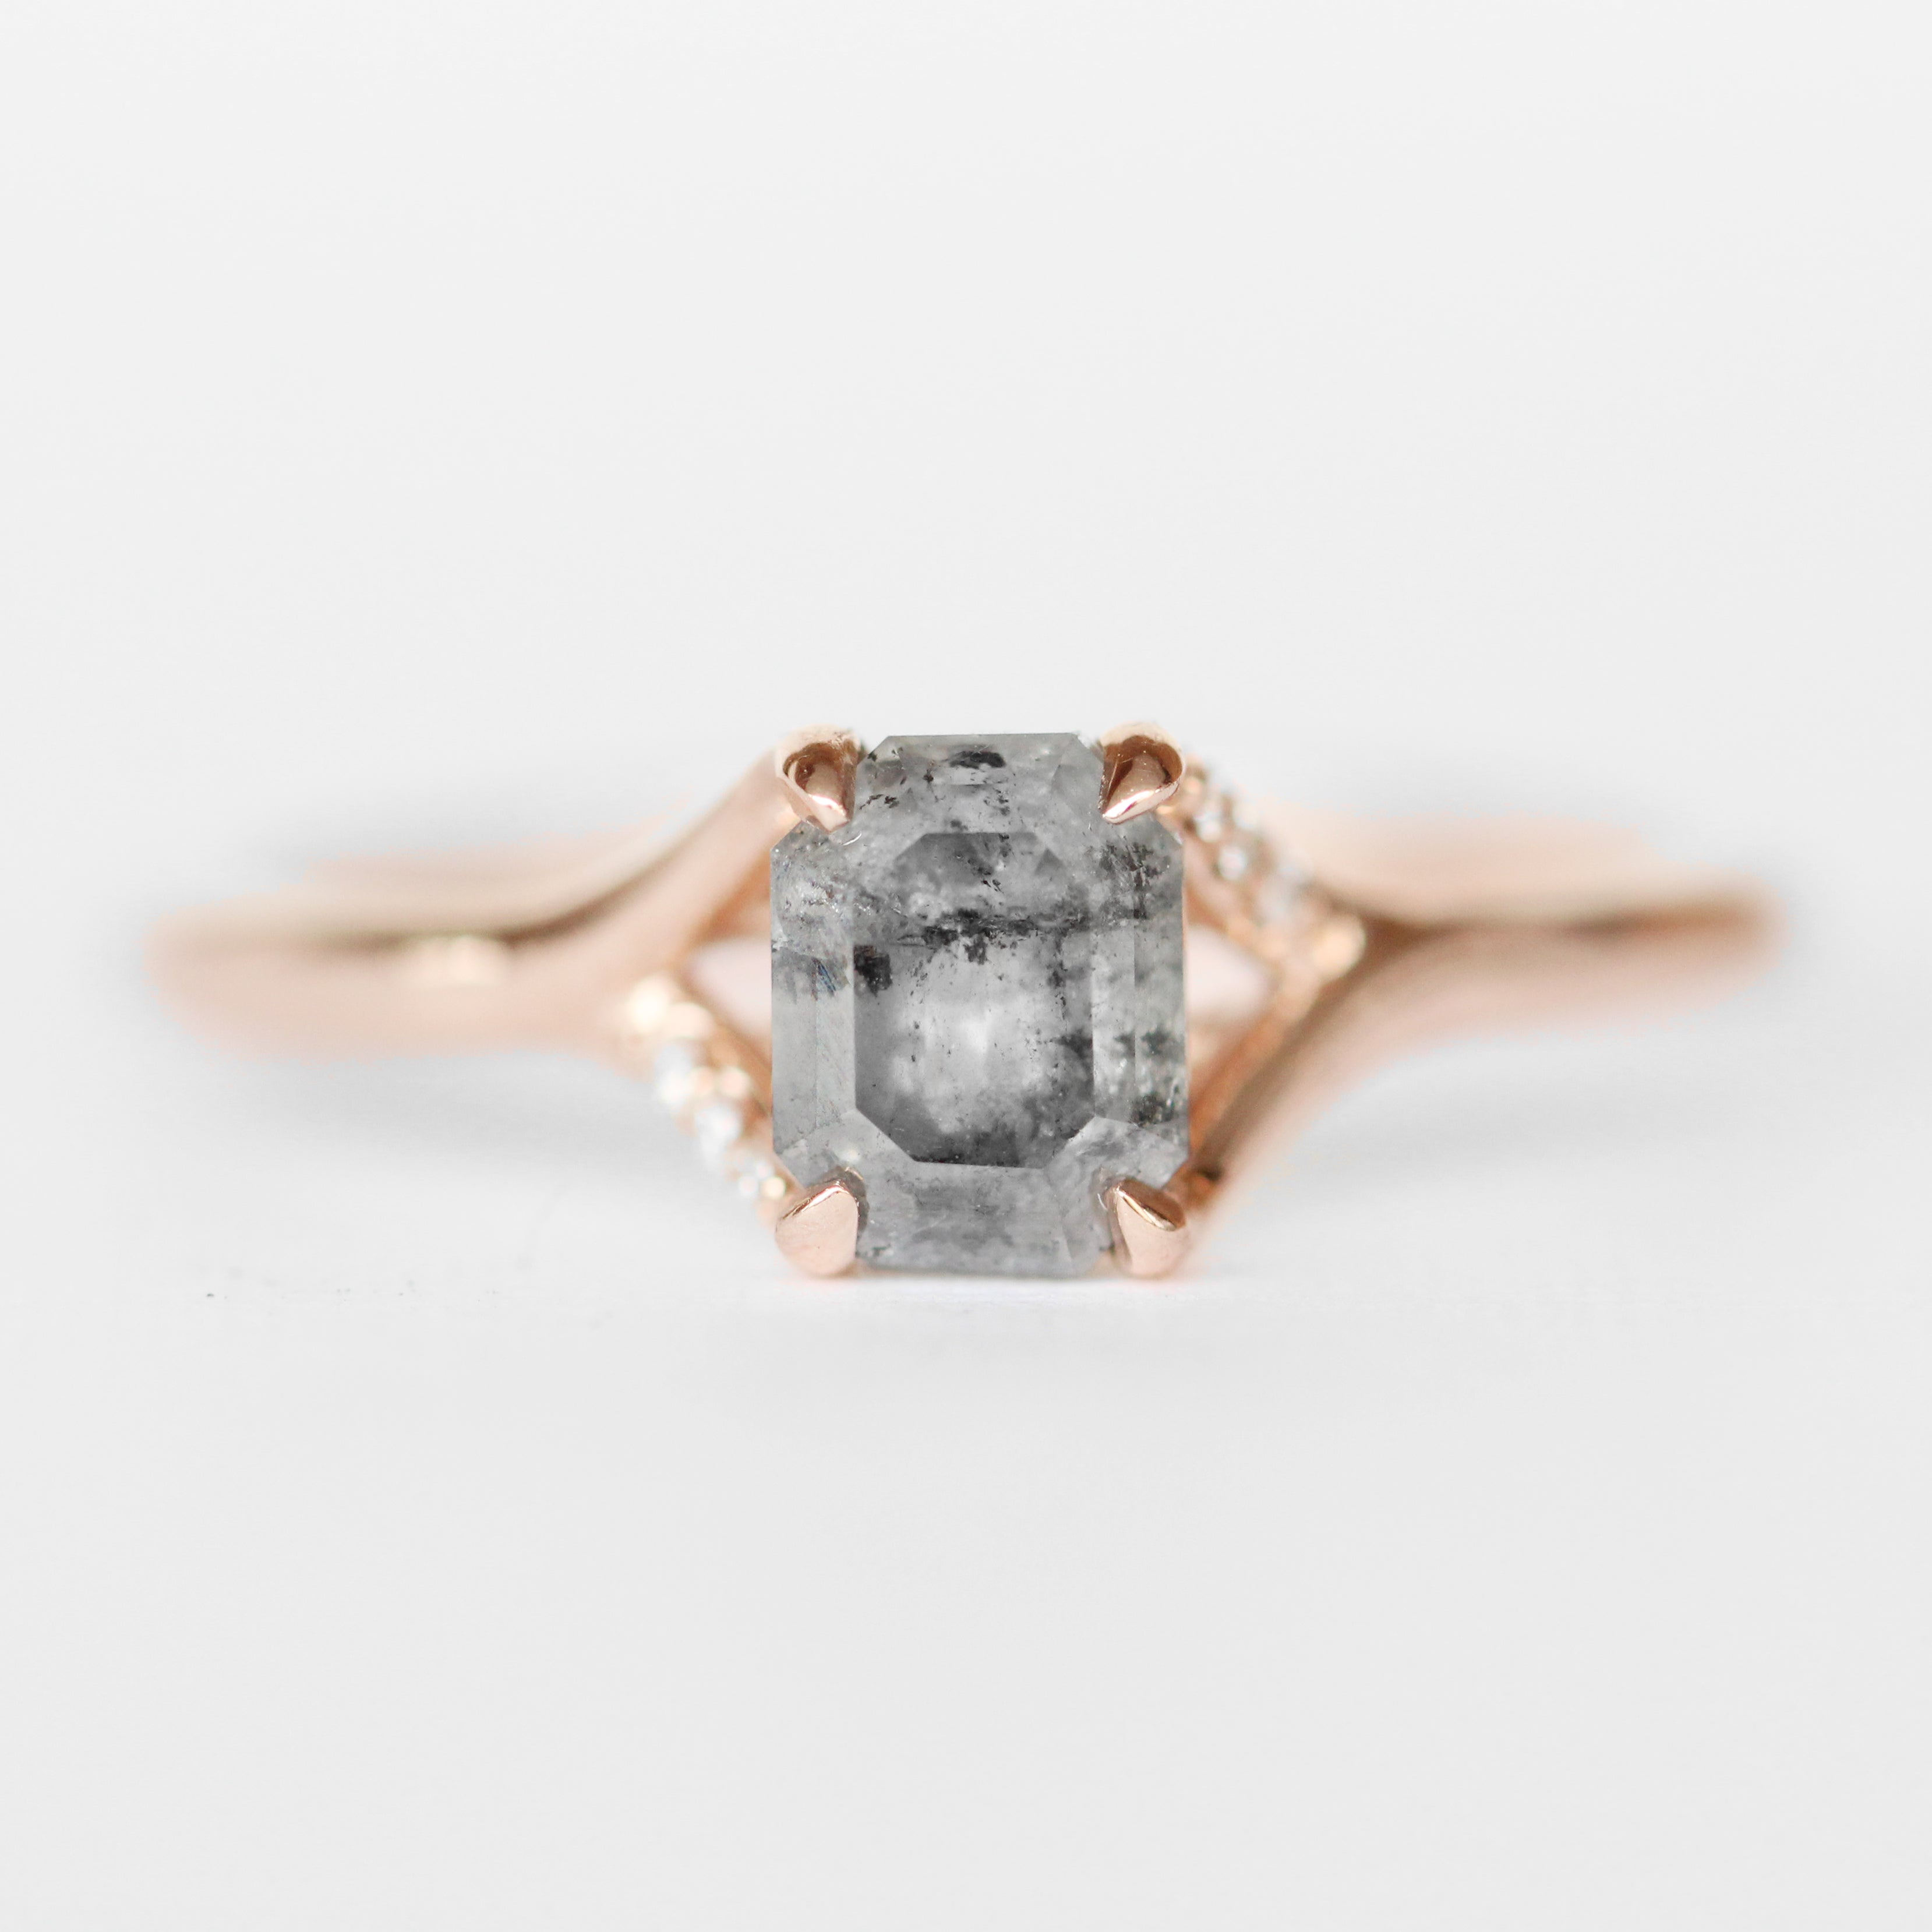 Kennedy Ring with an Emerald Cut Celestial Diamond + Diamond Accents in 10k Rose Gold - Ready to Size and Ship - Celestial Diamonds ® by Midwinter Co.